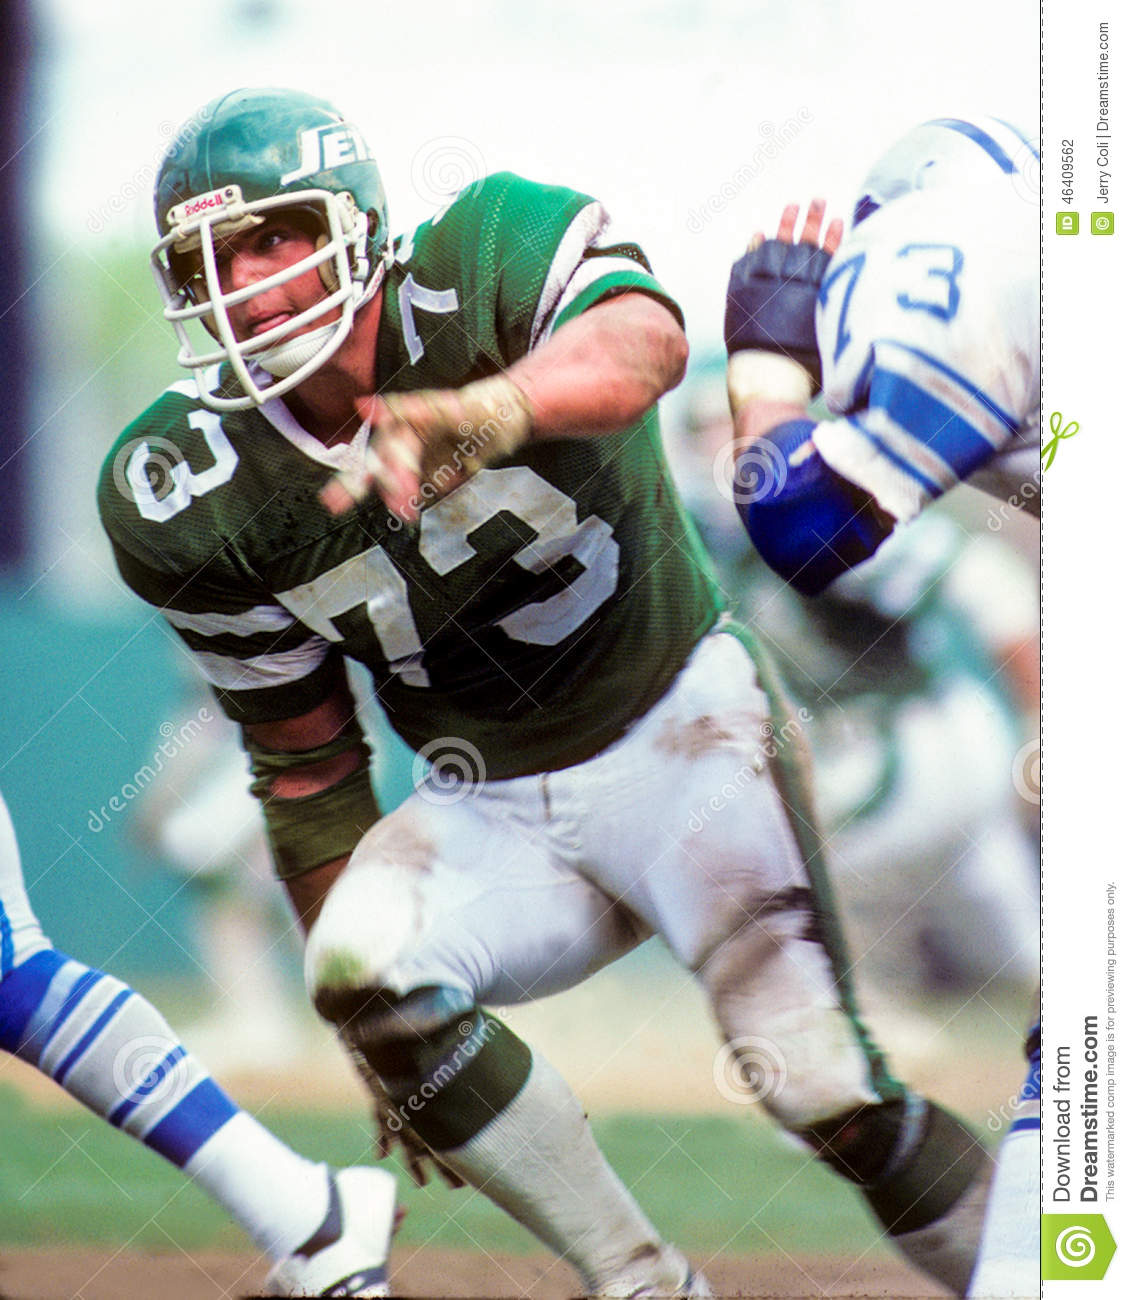 New York Jets star defensive lineman Joe Klecko #73. (Image taken from ...